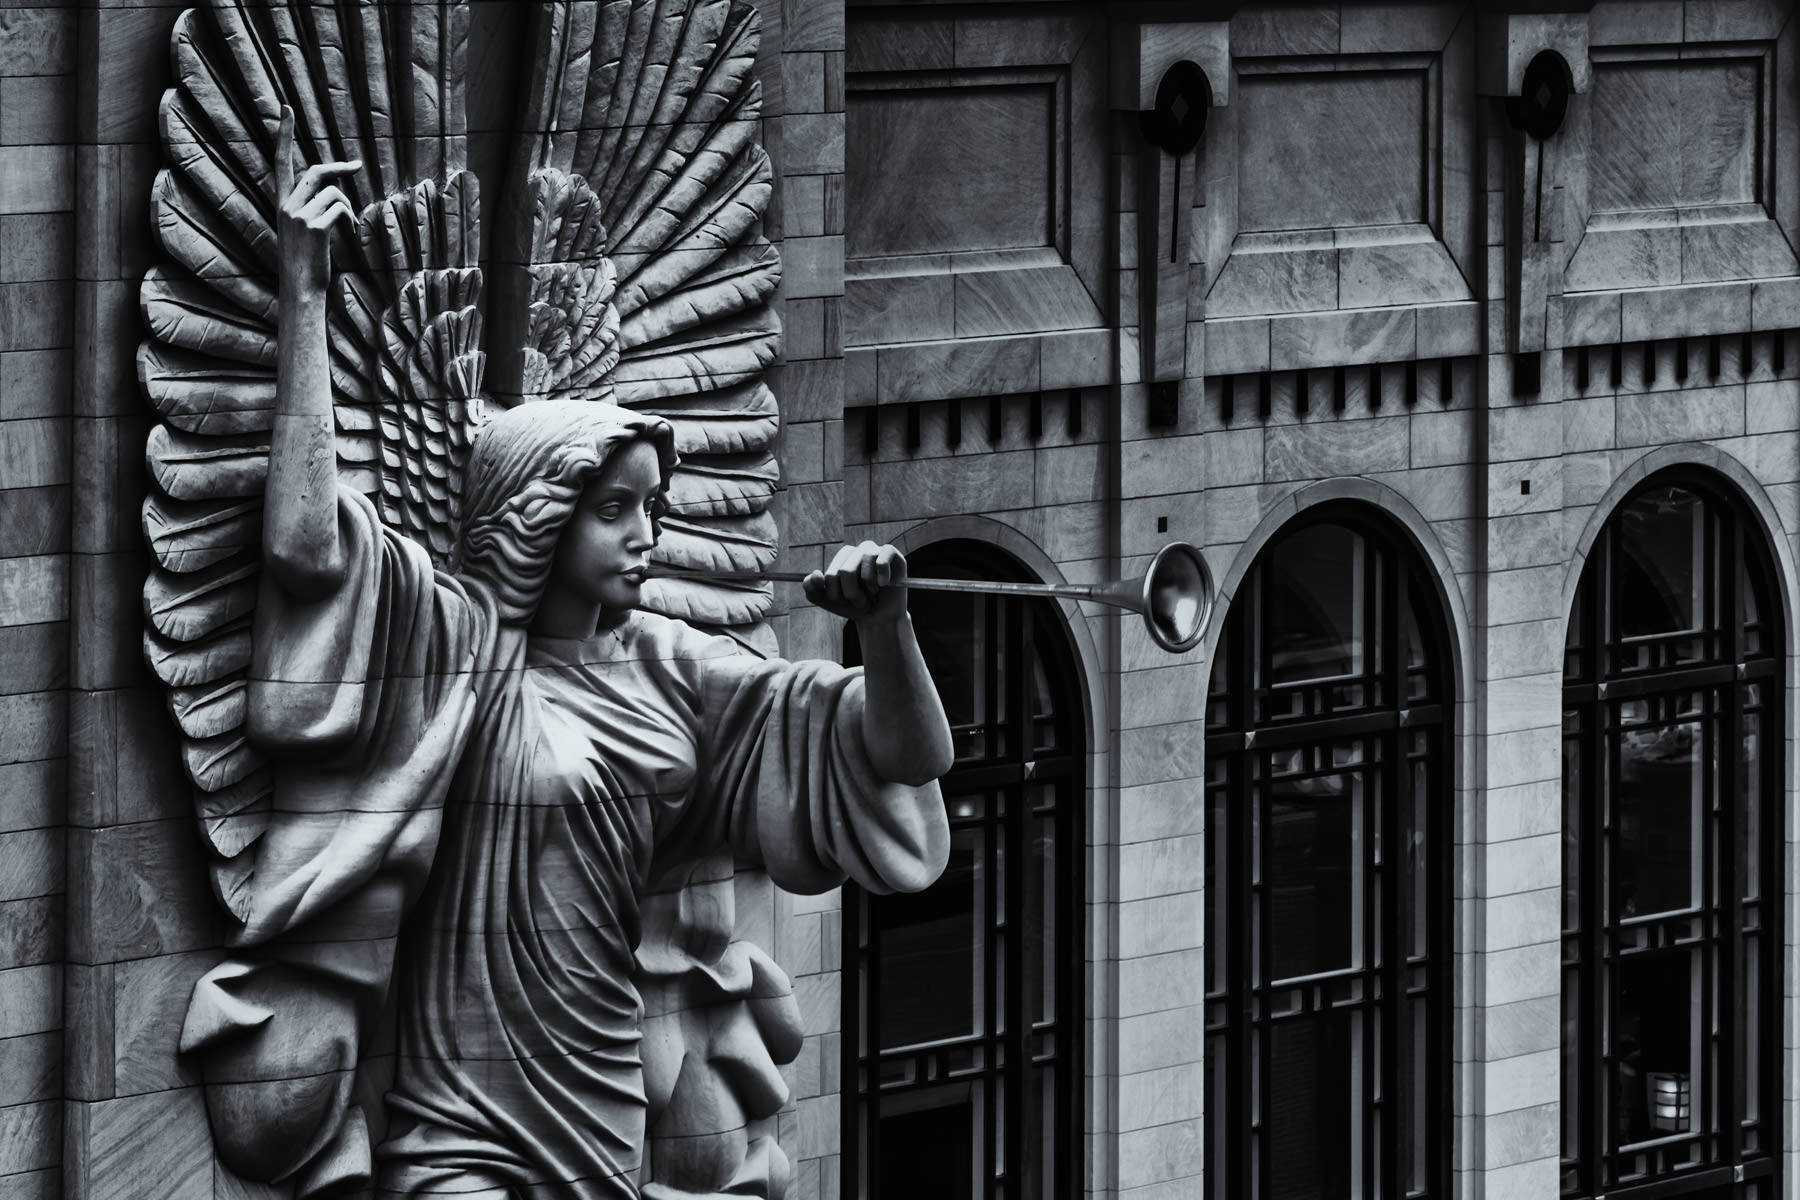 One of two 48-foot-tall trumpet-playing angels on the façade of Fort Worth's Bass Performance Hall seem to announce the presence of this opera house to the world.